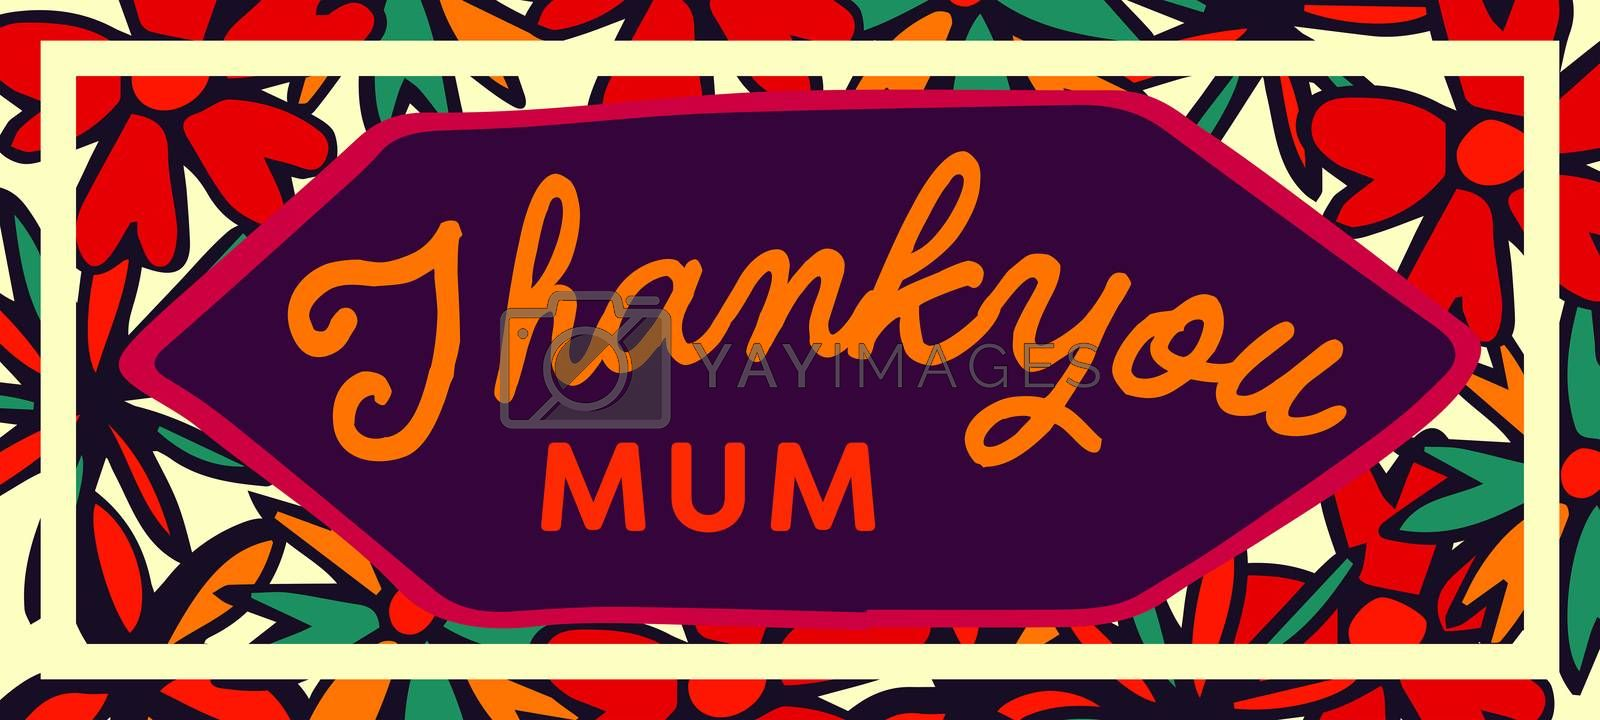 Vector of mothers day card with thank you mum message